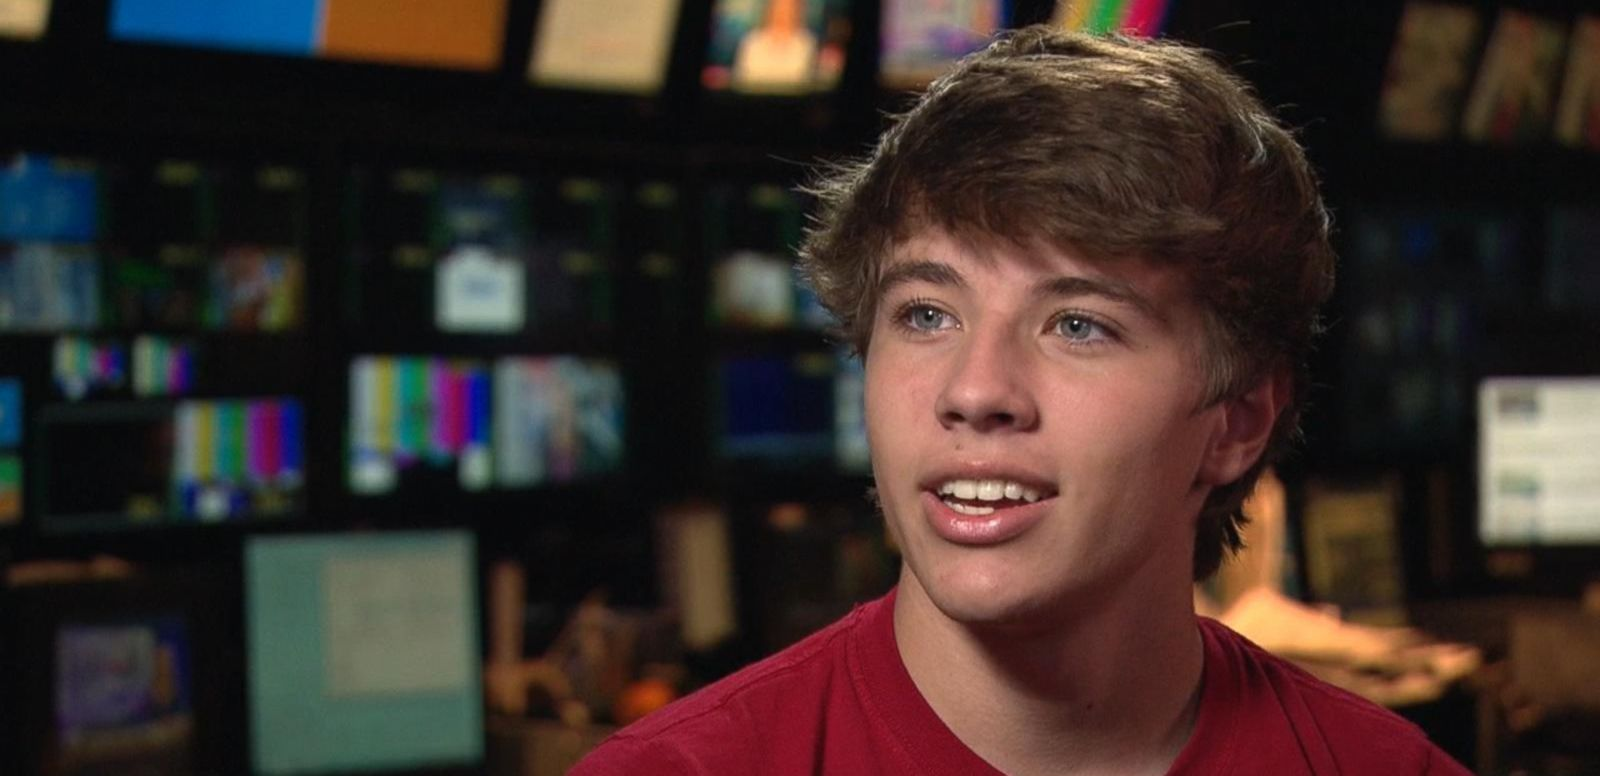 VIDEO: What #AlexFromTarget Hopes to Do With His Internet Fame